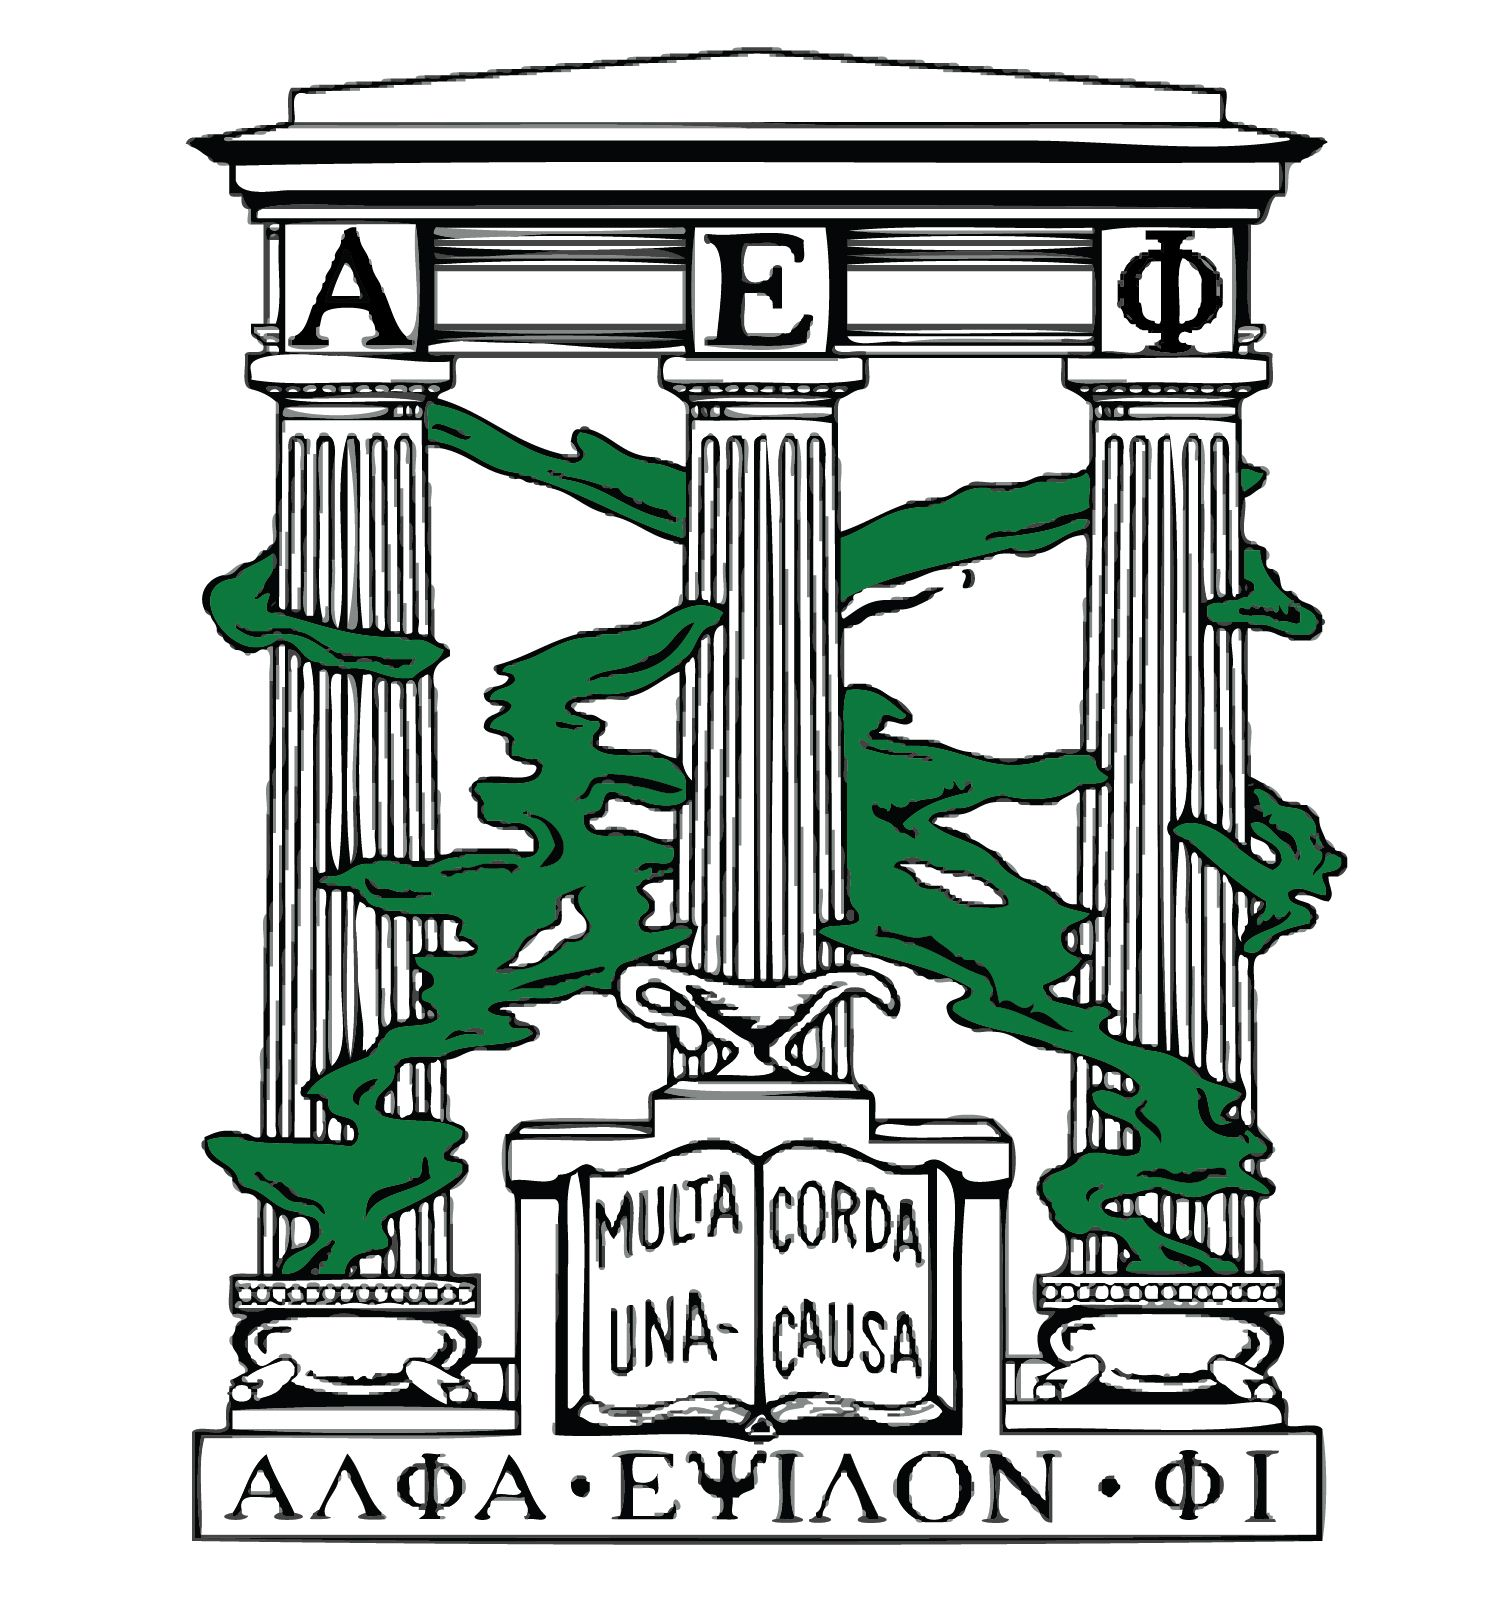 Sororities Alpha Epsilon Phi